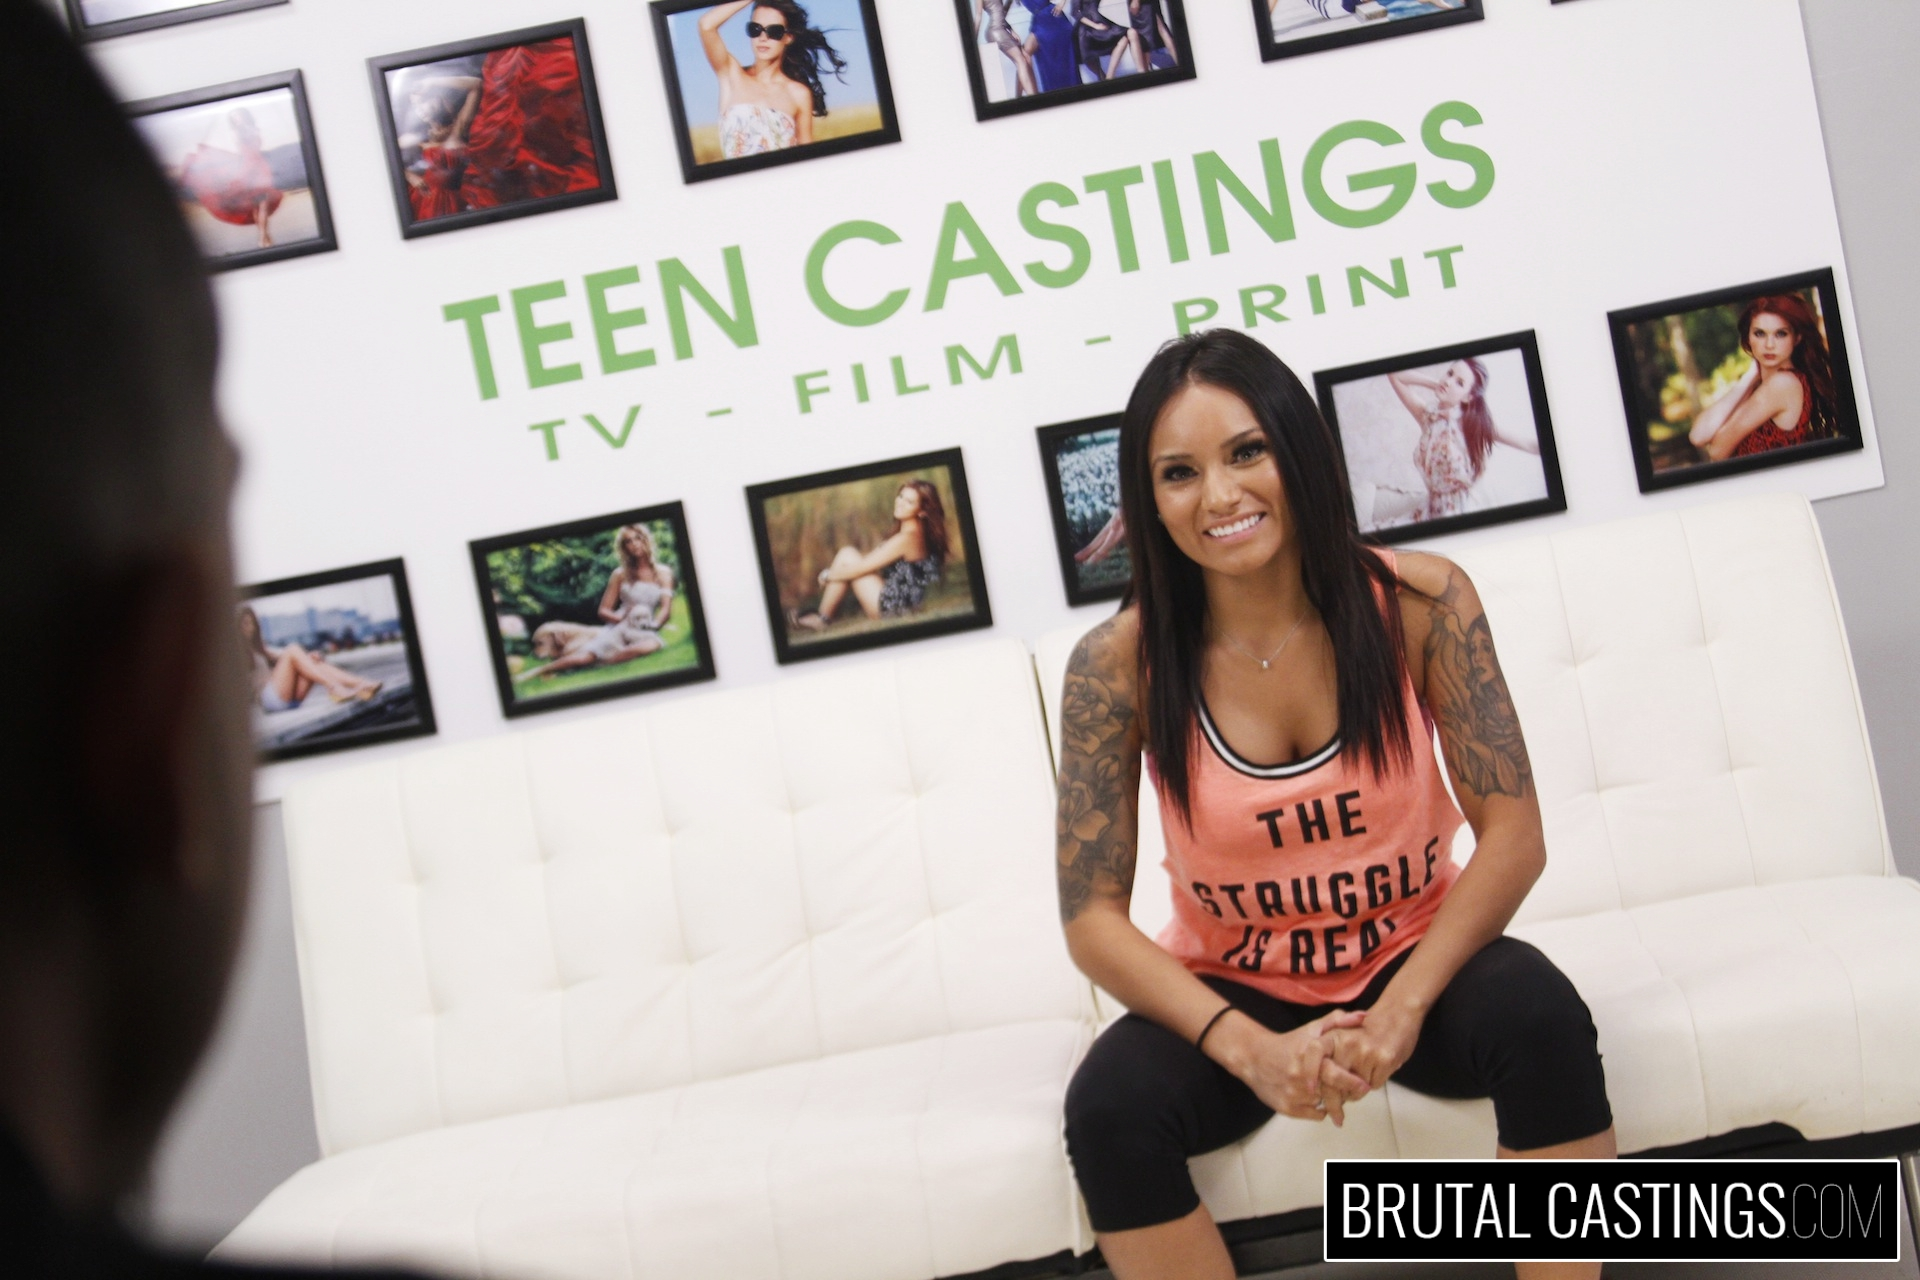 Bdsm casting  with natalia mendez. Natalia Mendez, a young horny Latina, dreams of becoming a supermodel with Teen Castings. She'll do anything for a contract. She'll even endure BDSM, domination, rope bondage, deepthroat bj, fingering, squirting, spanking, slapping and rough sex.